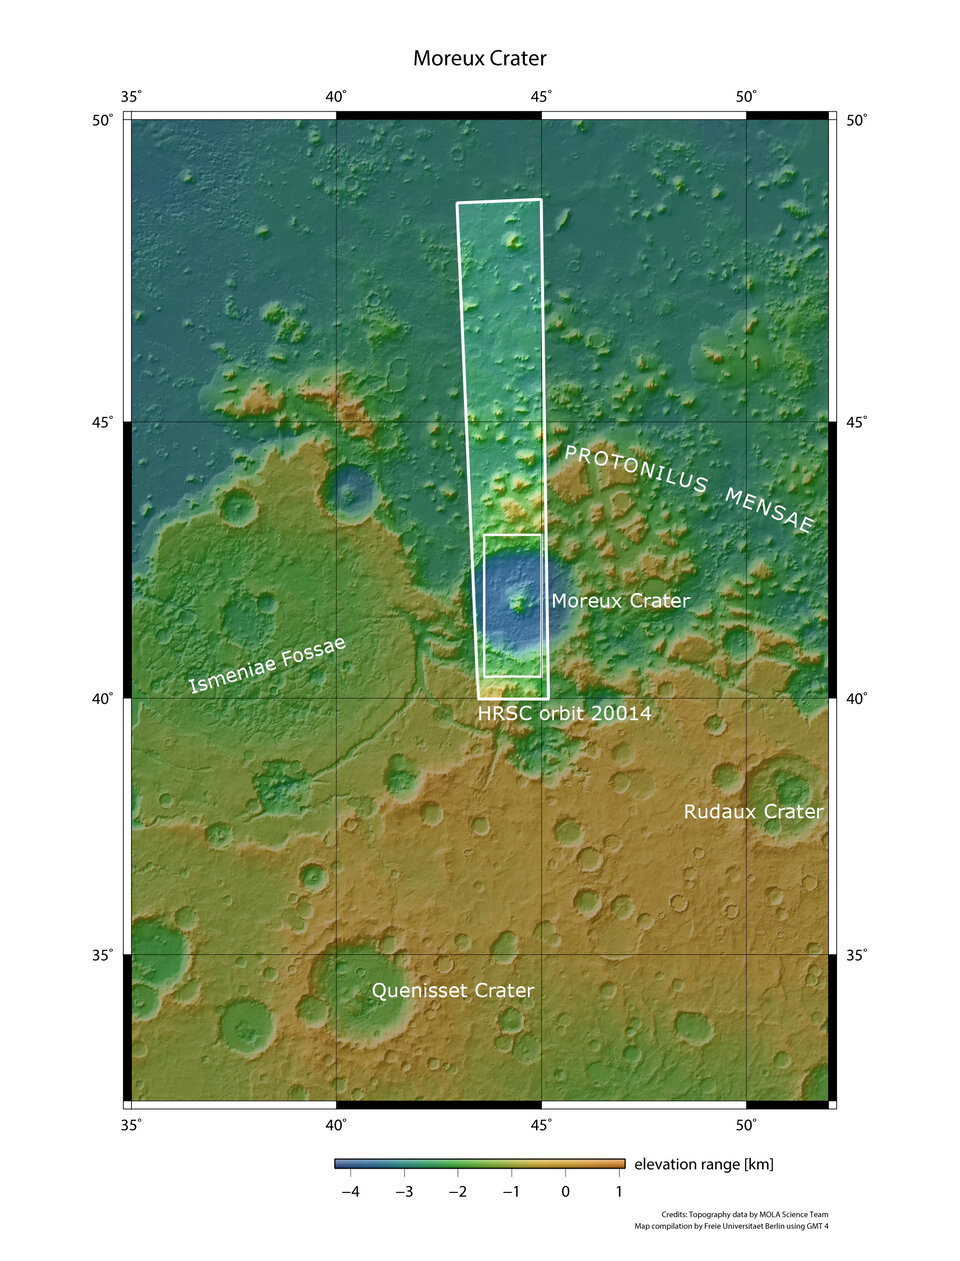 Moreux crater in wider context